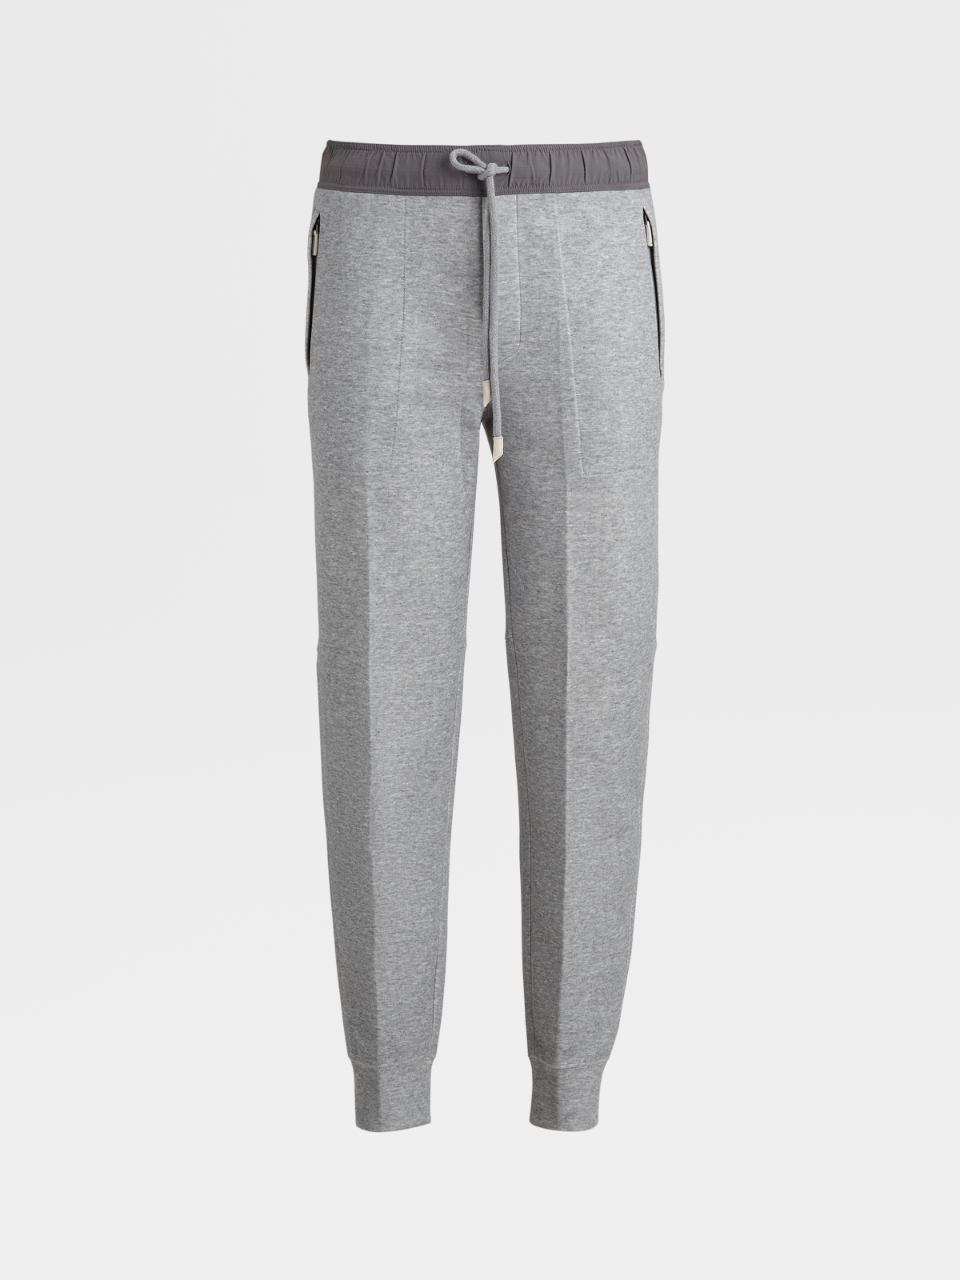 Cotton Spacer Joggers